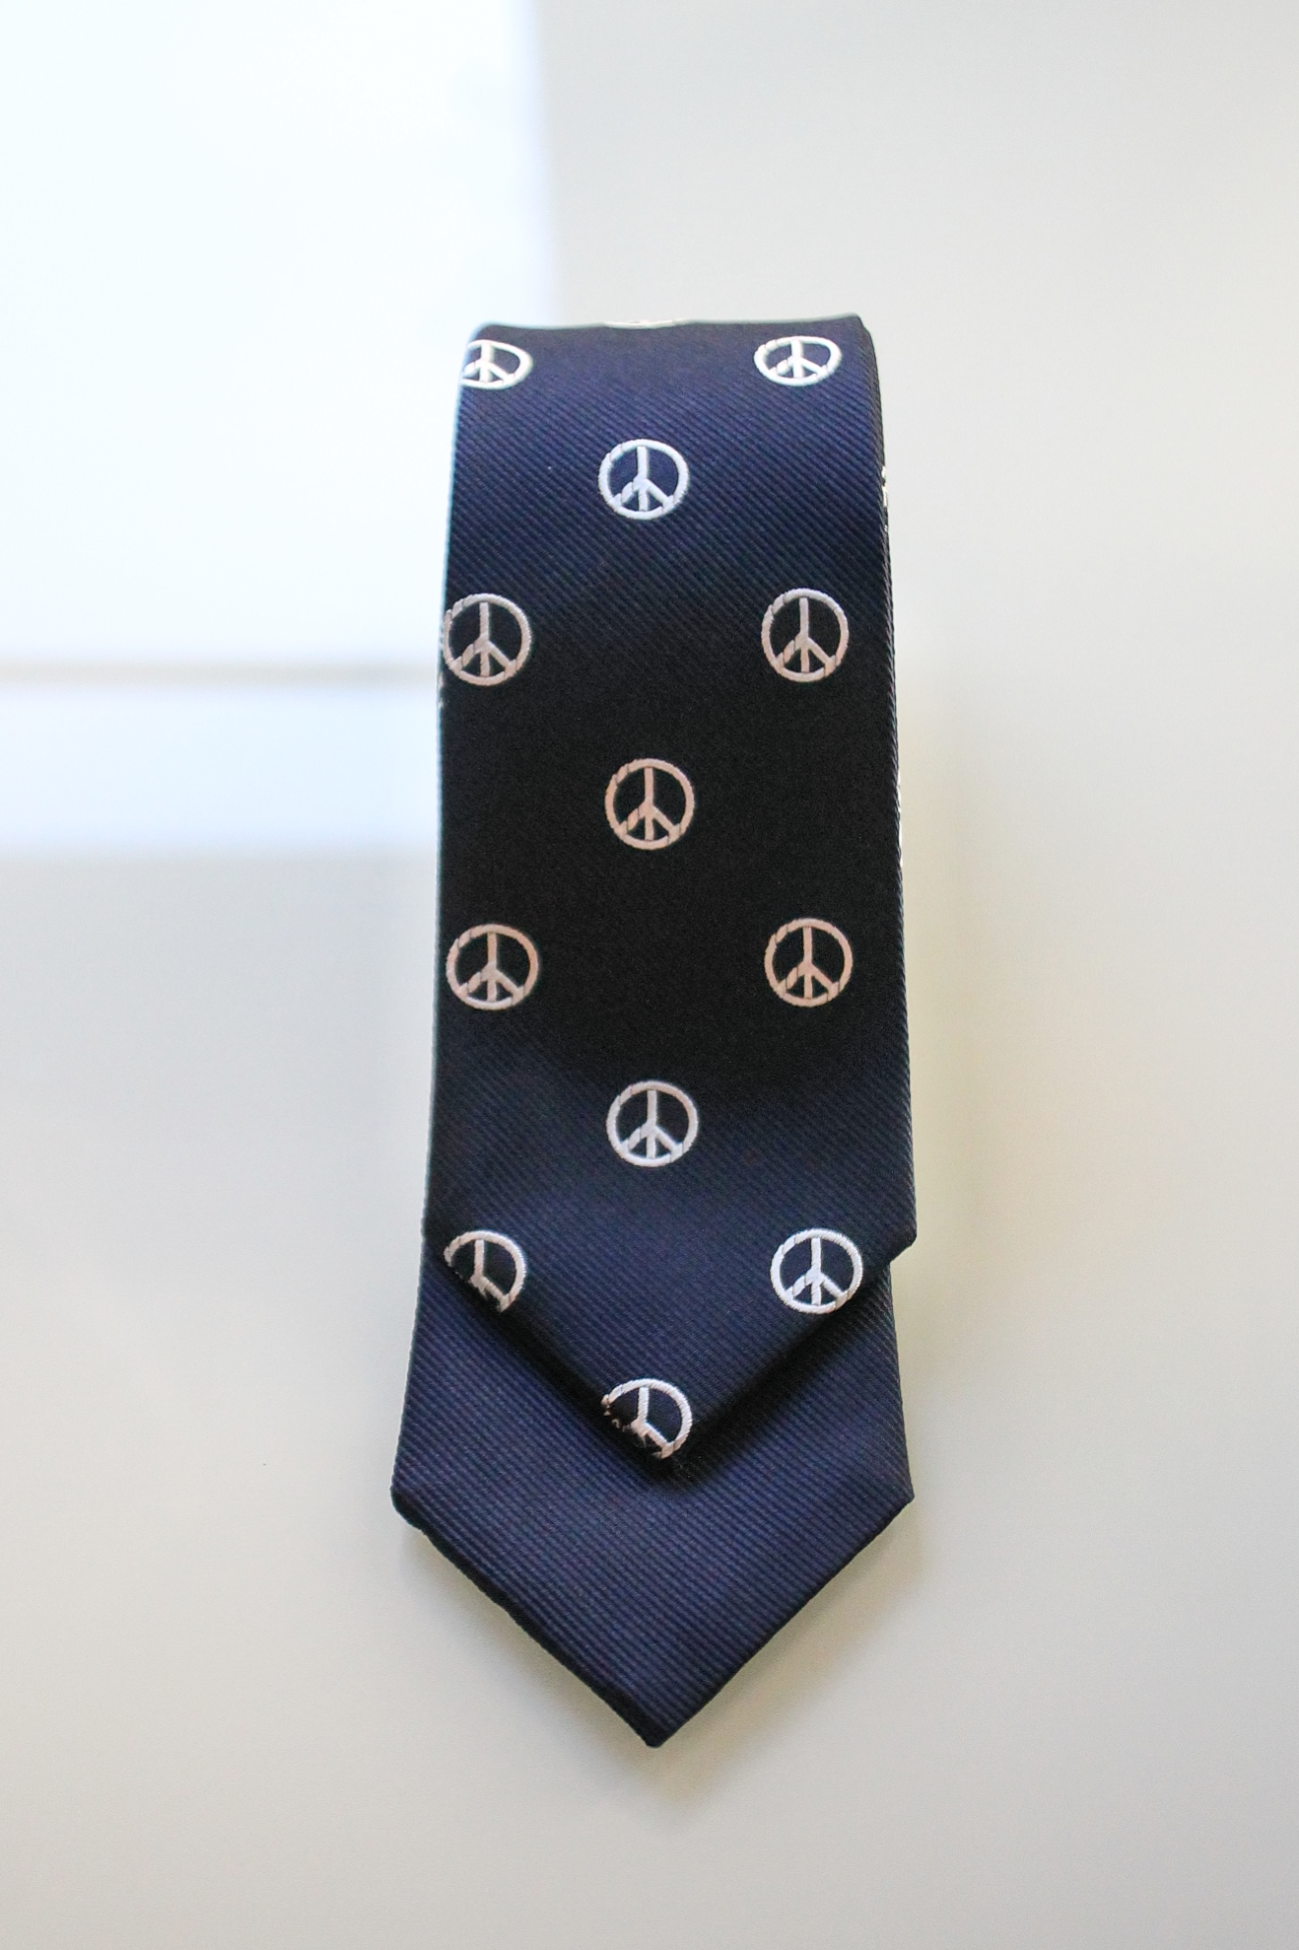 [KENNETH FIELD] 4 Face Tie - Navy/White